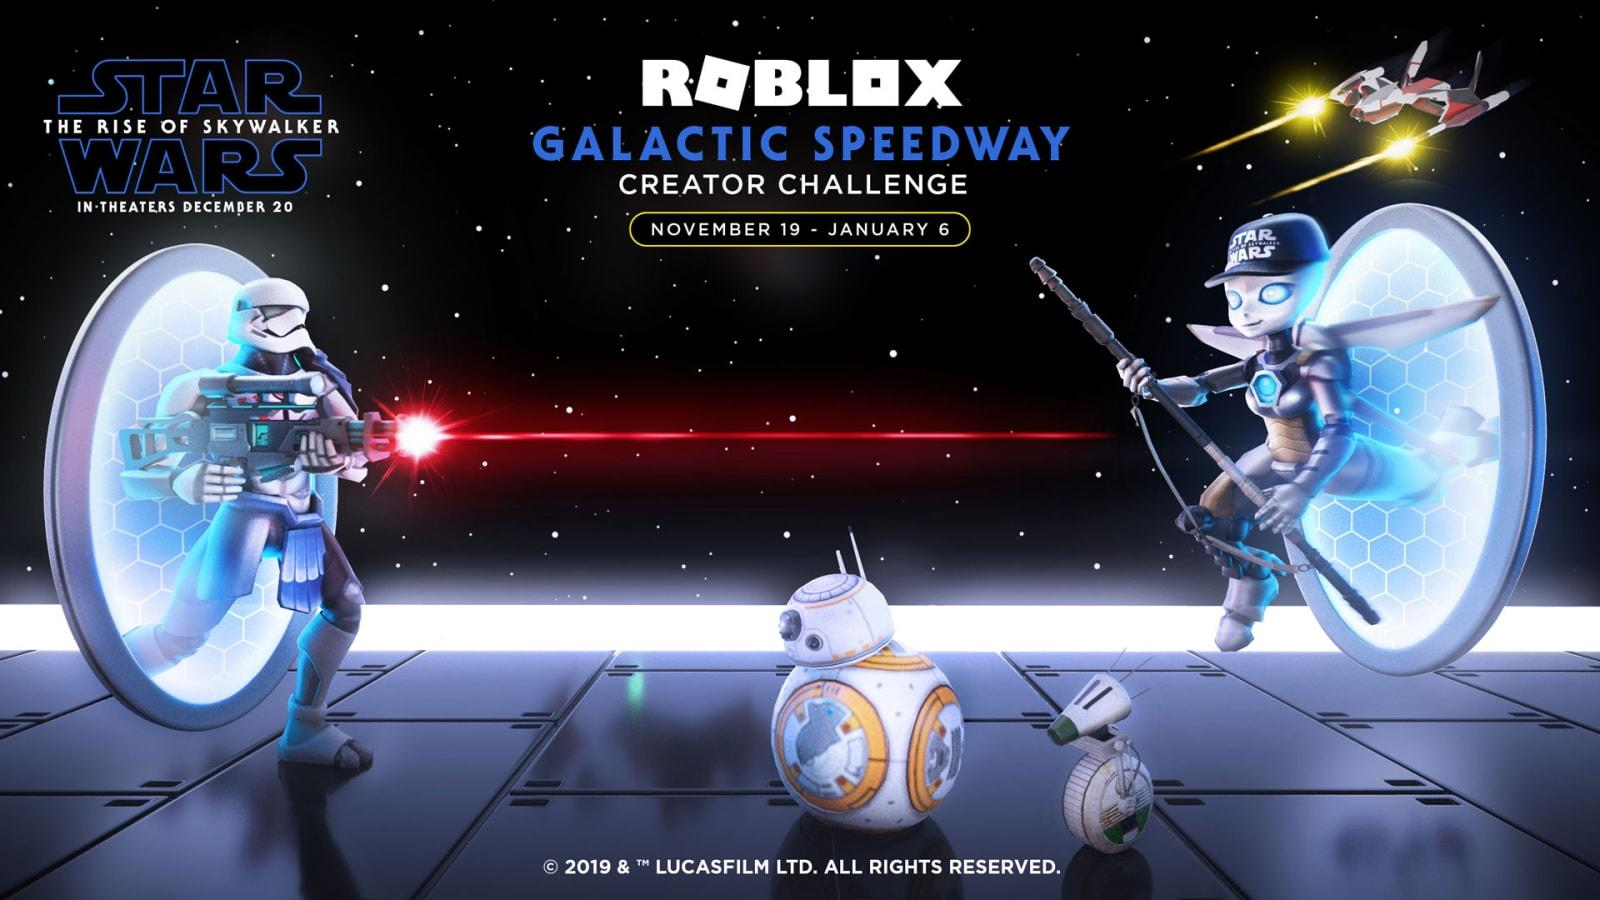 How To Make A Roblox Audio Roblox Tutorial Fitz Roblox Wants You To Build Star Wars Speeder To Celebrate Rise Of Skywalker Engadget